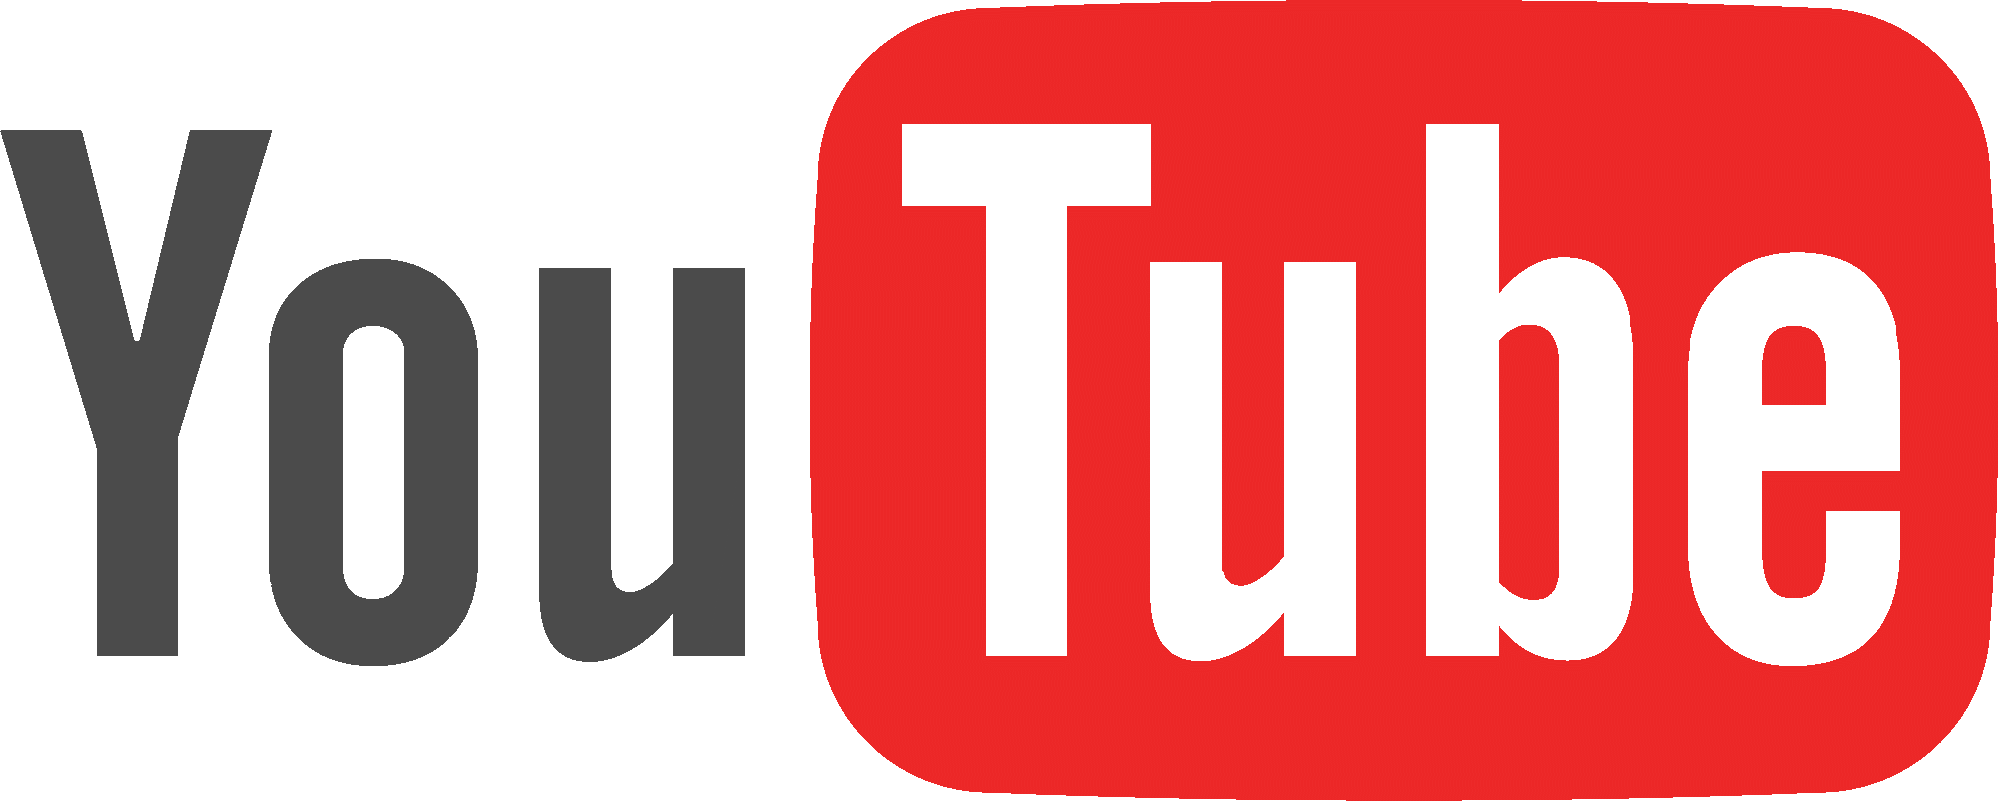 File:Solid color You Tube logo.png - YouTube PNG